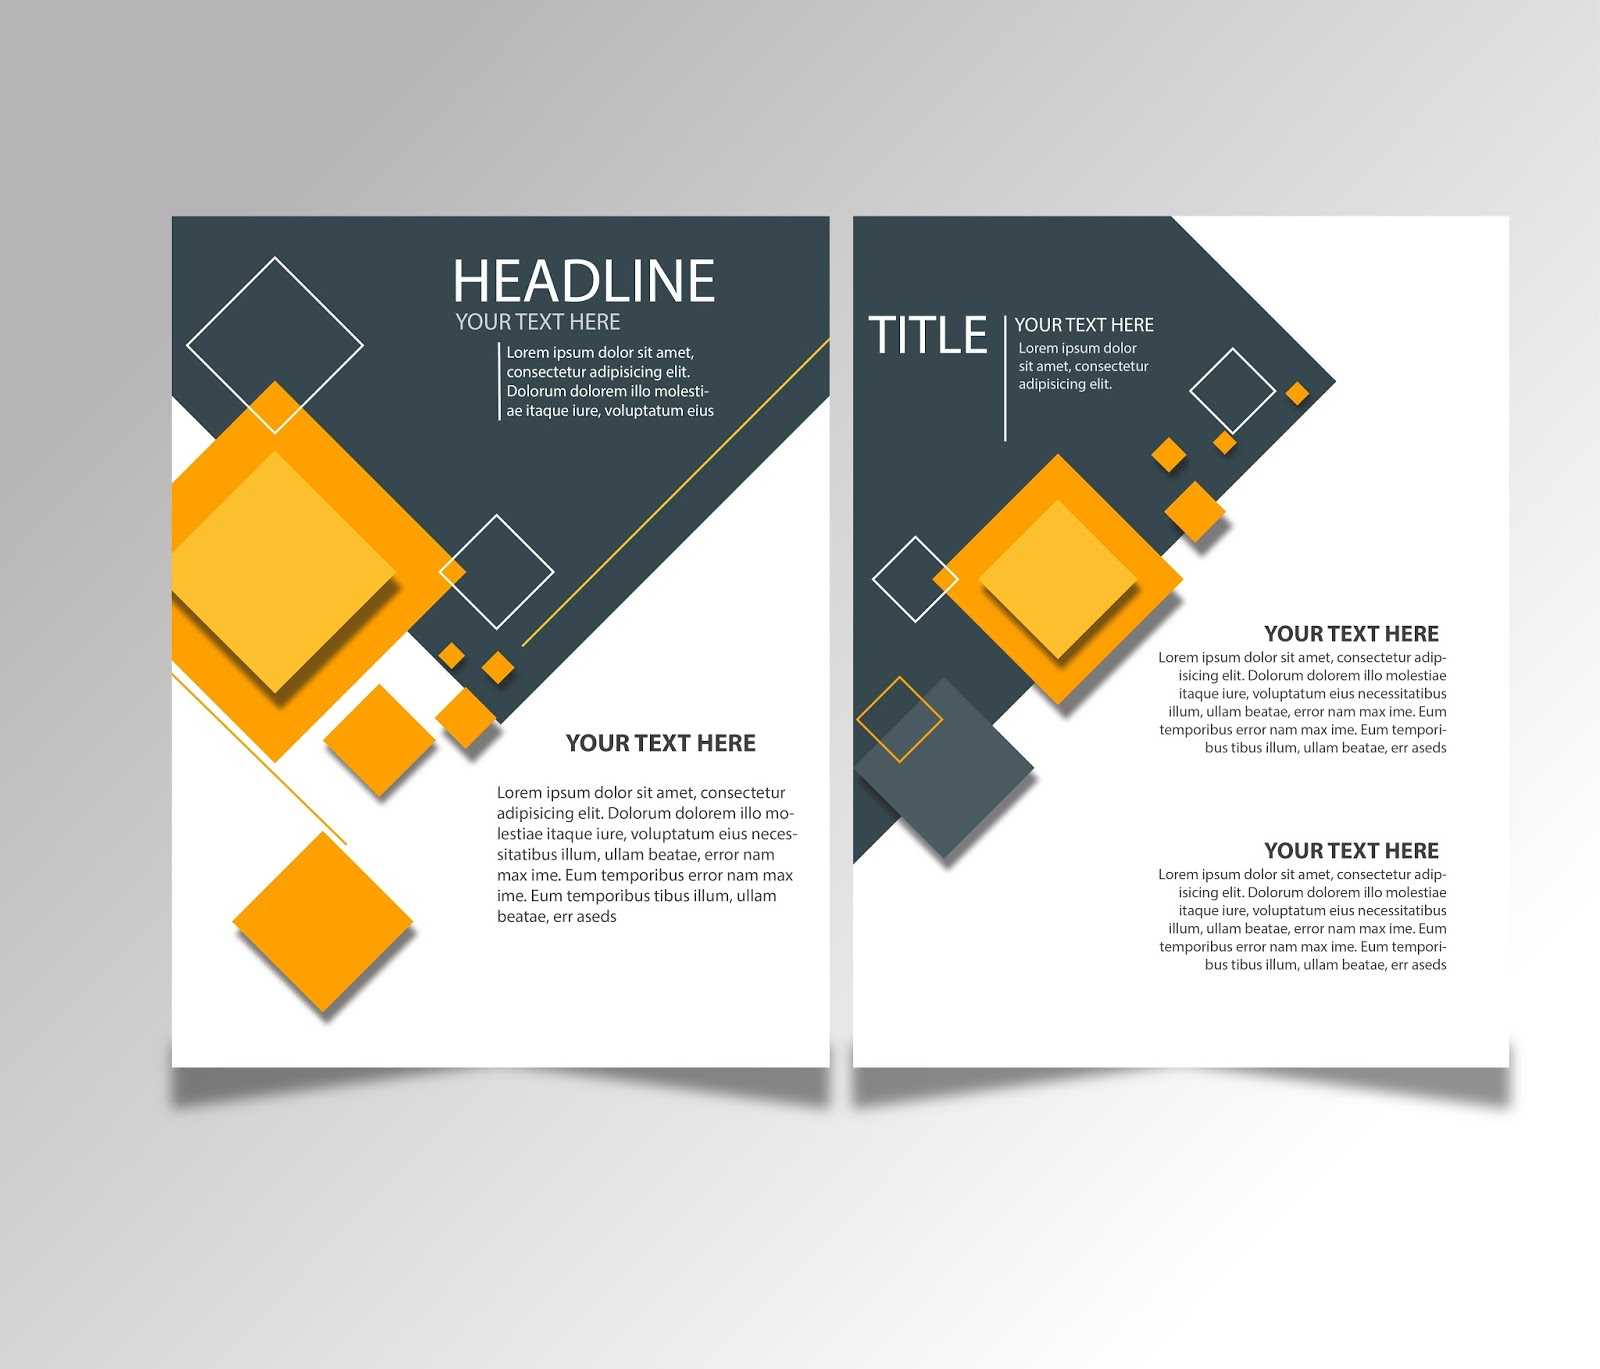 Free Download Brochure Design Templates Ai Files - Ideosprocess In Brochure Template Illustrator Free Download